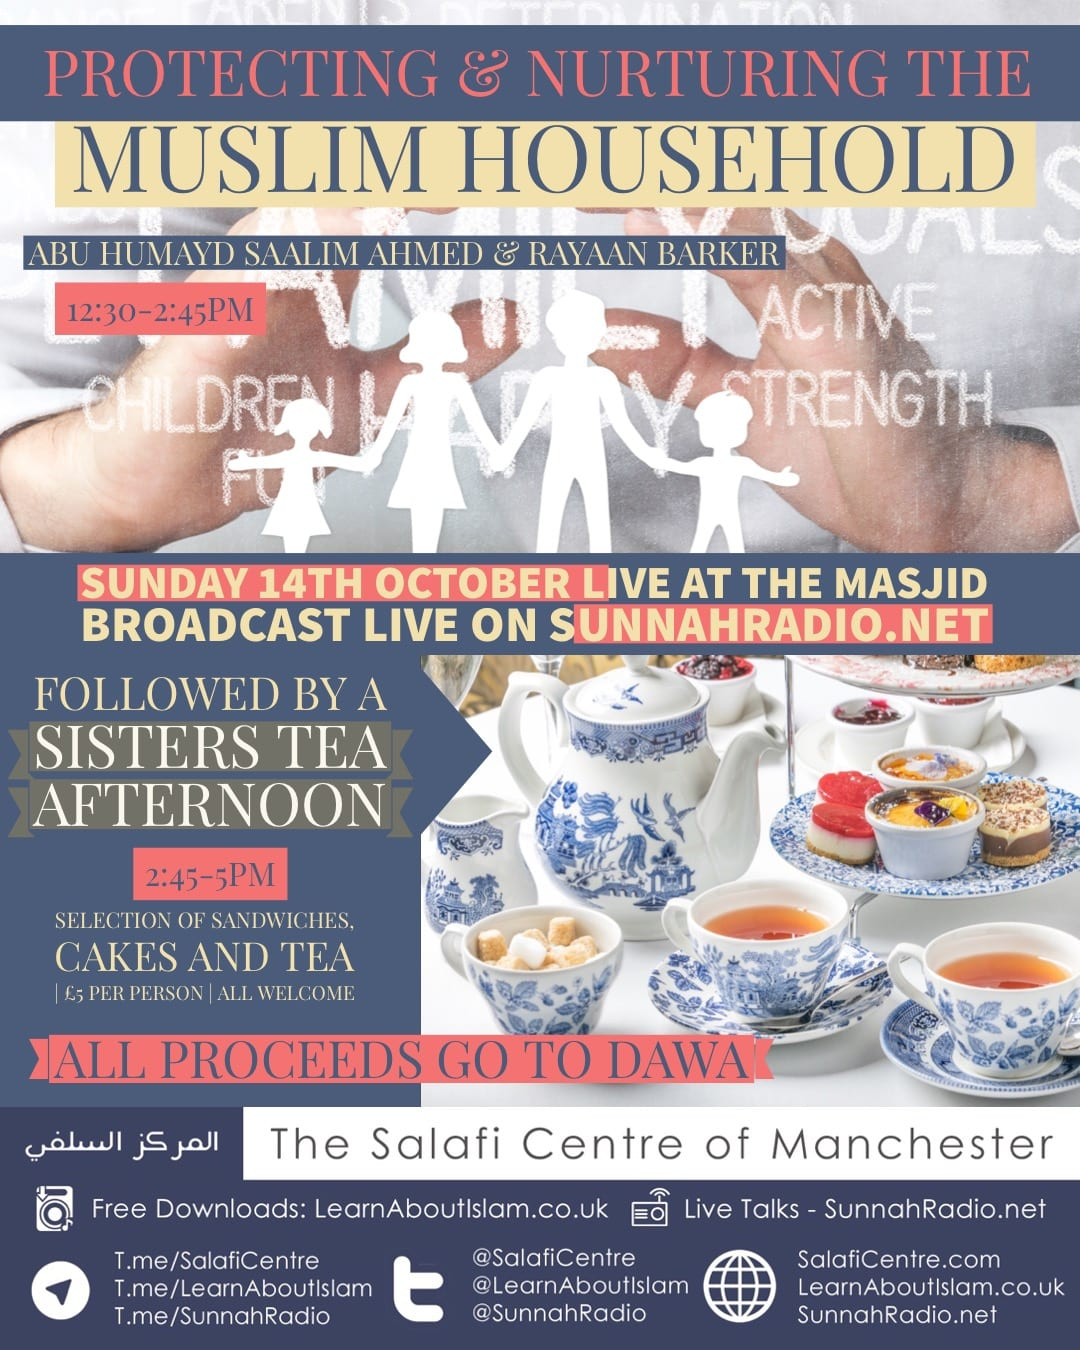 Live Event! Protecting and Nurturing the Muslim Household & Sisters Tea Afternoon with Abu Humayd & Rayaan Barker on Sunday 14th October 12:30-5pm.